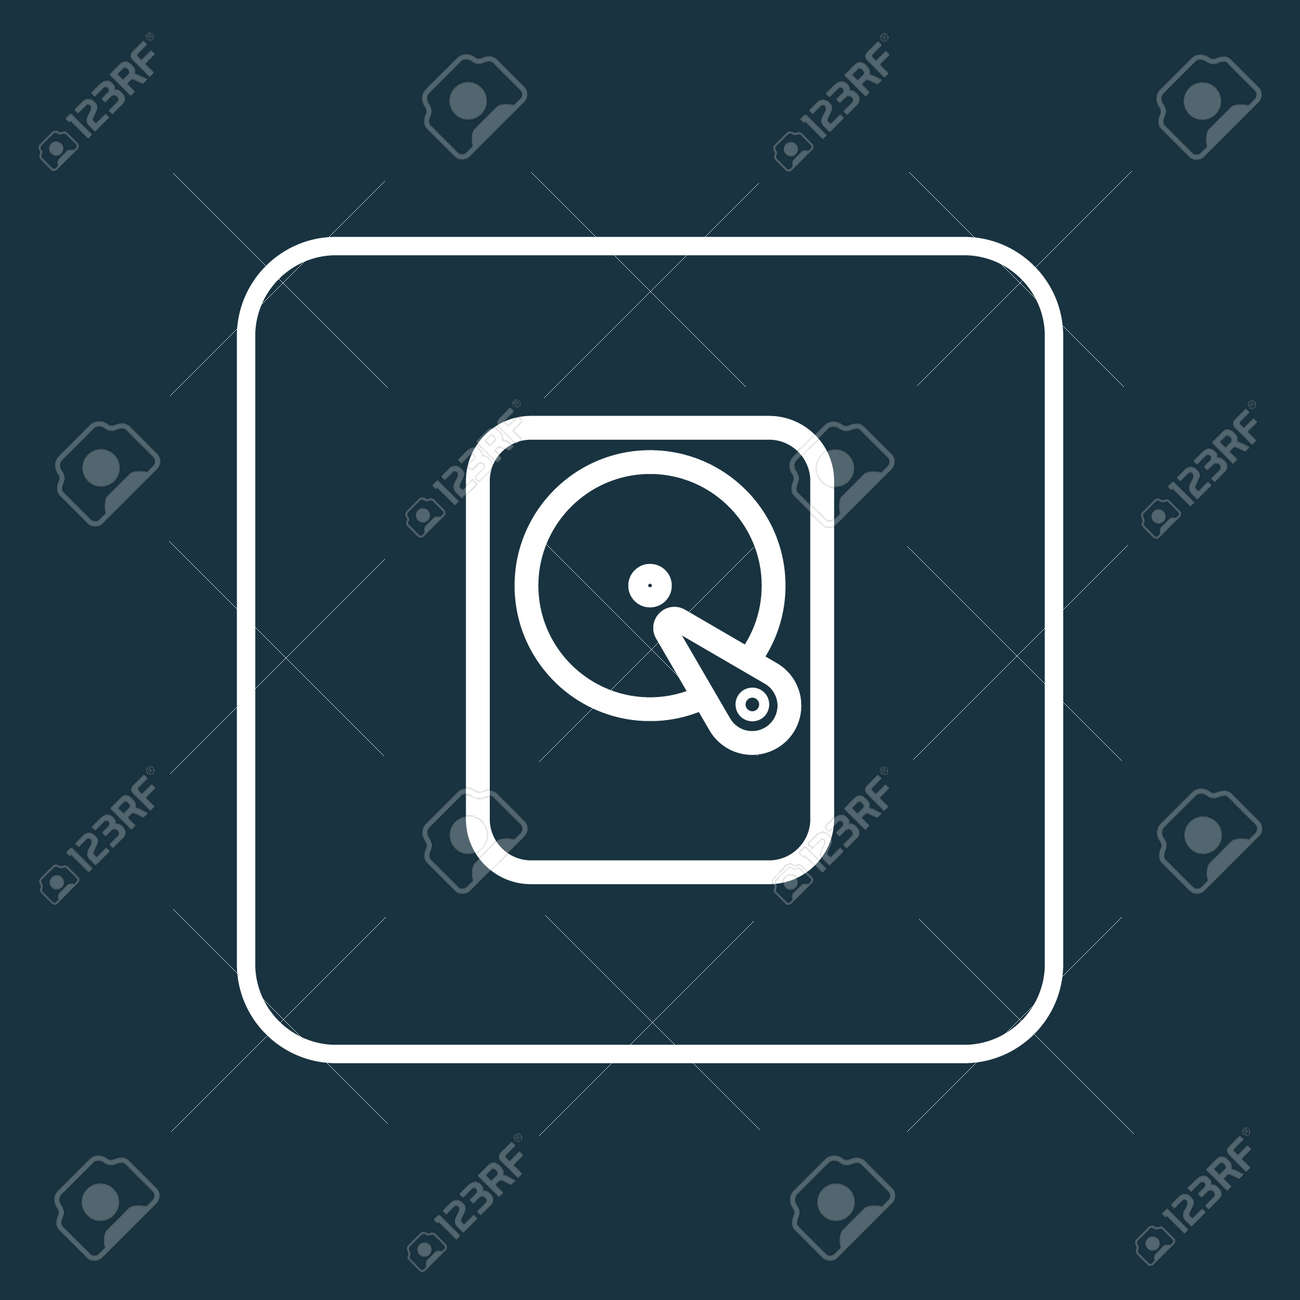 Winchester Outline Symbol Premium Quality Isolated Hard Disk